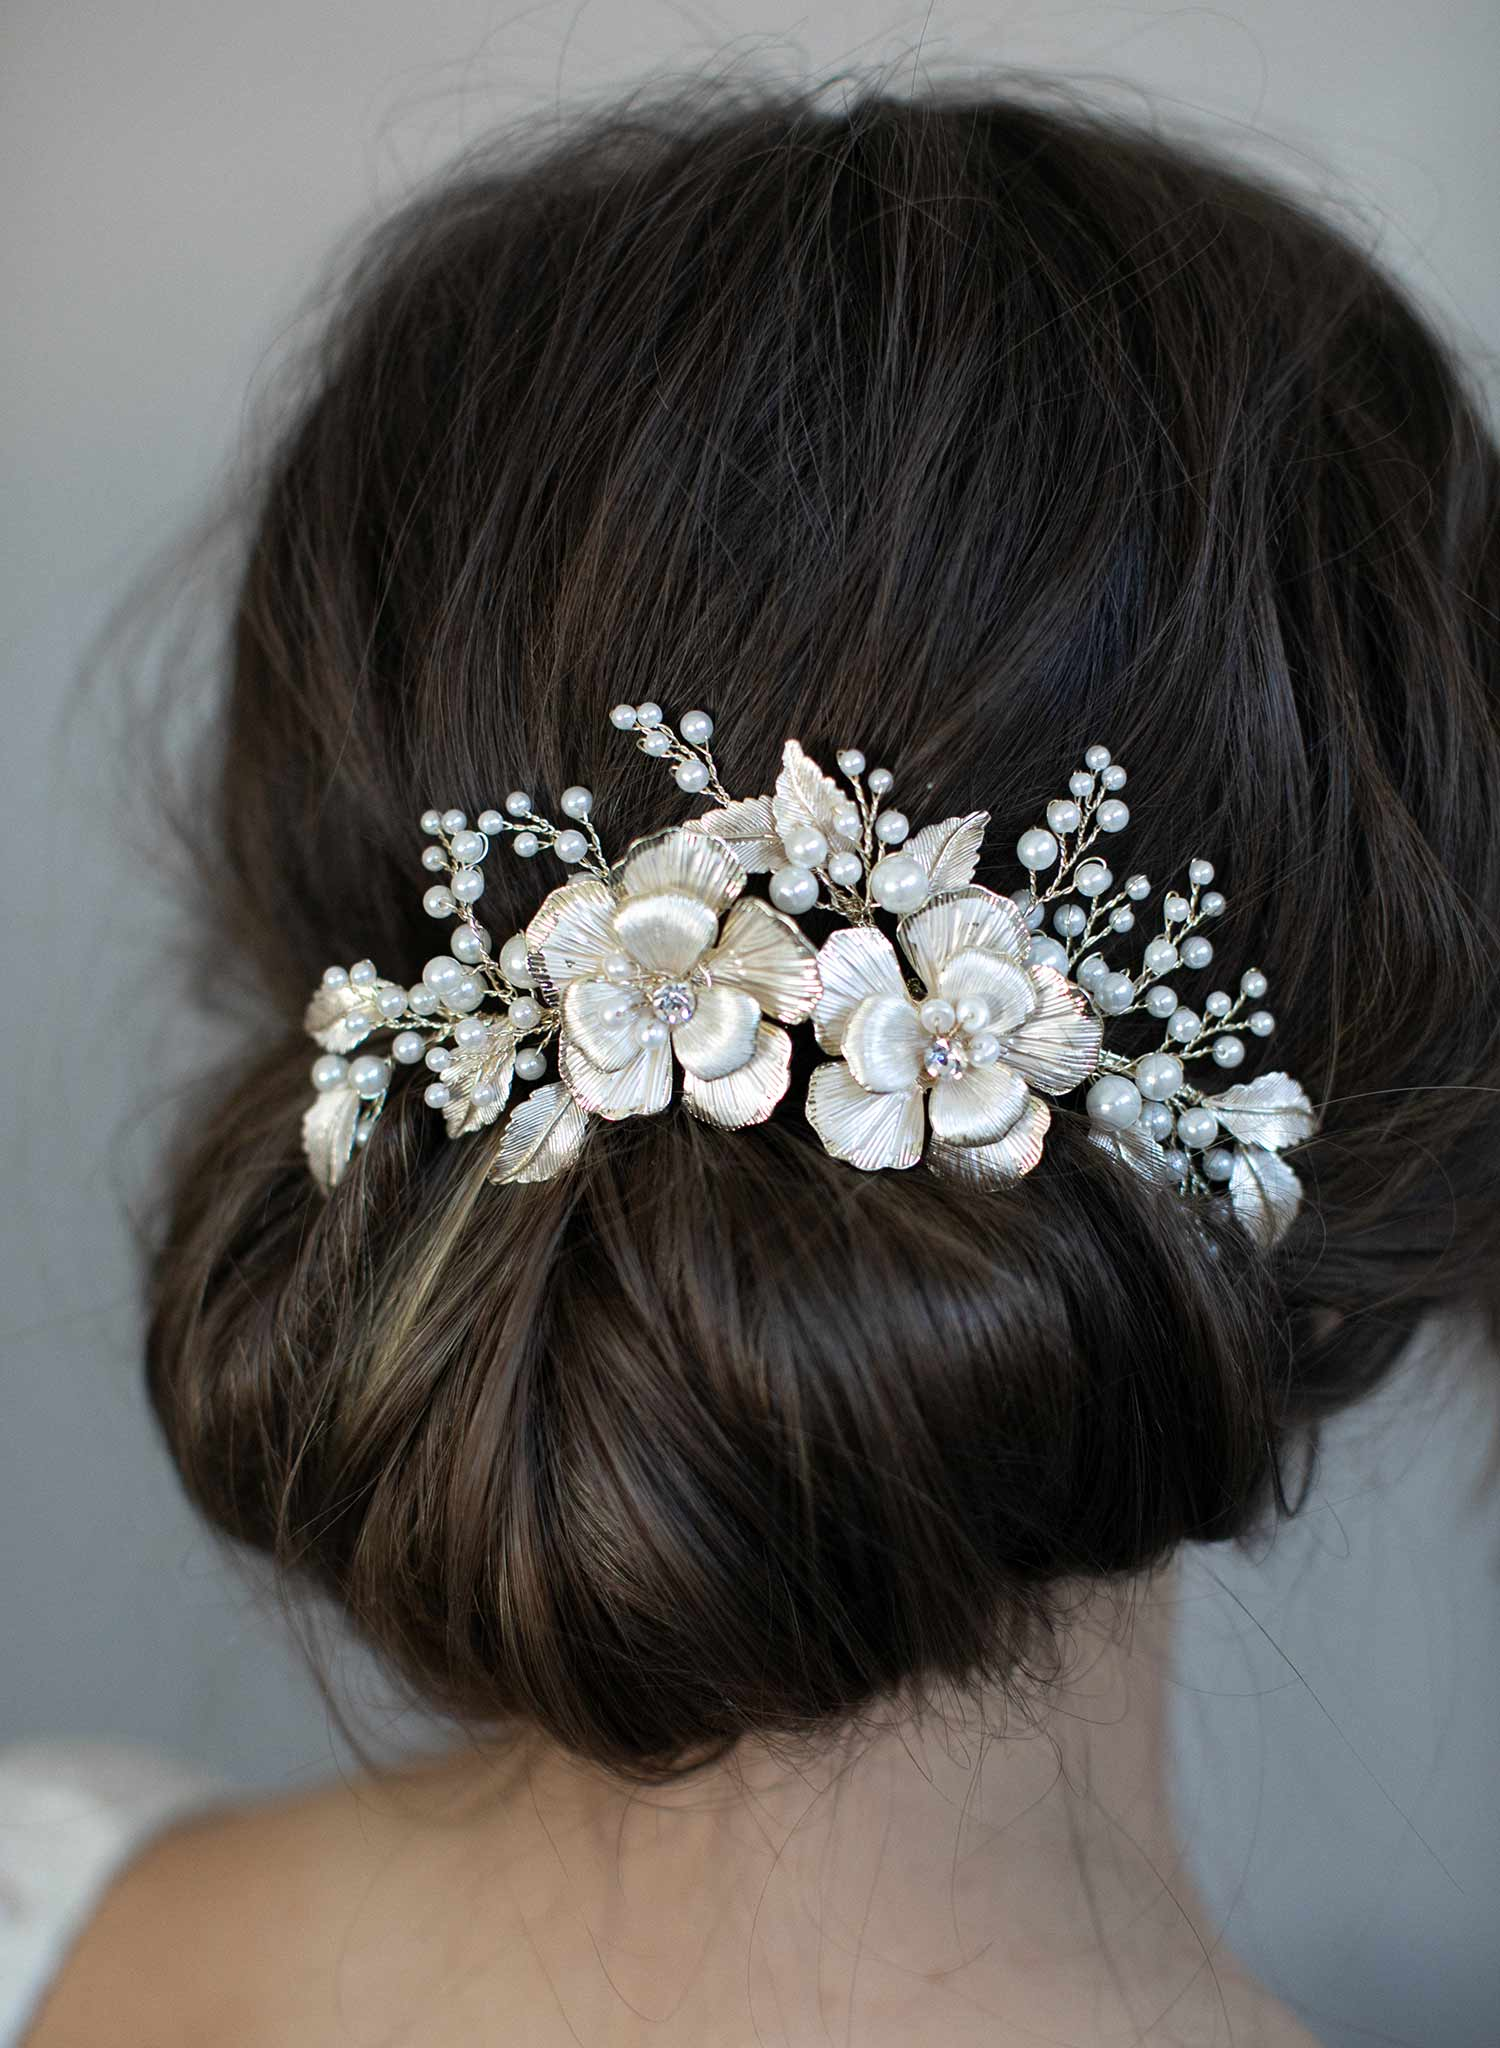 c617aeb1397f Gold flower bridal hair comb - Double flower and pearl spray hair ...